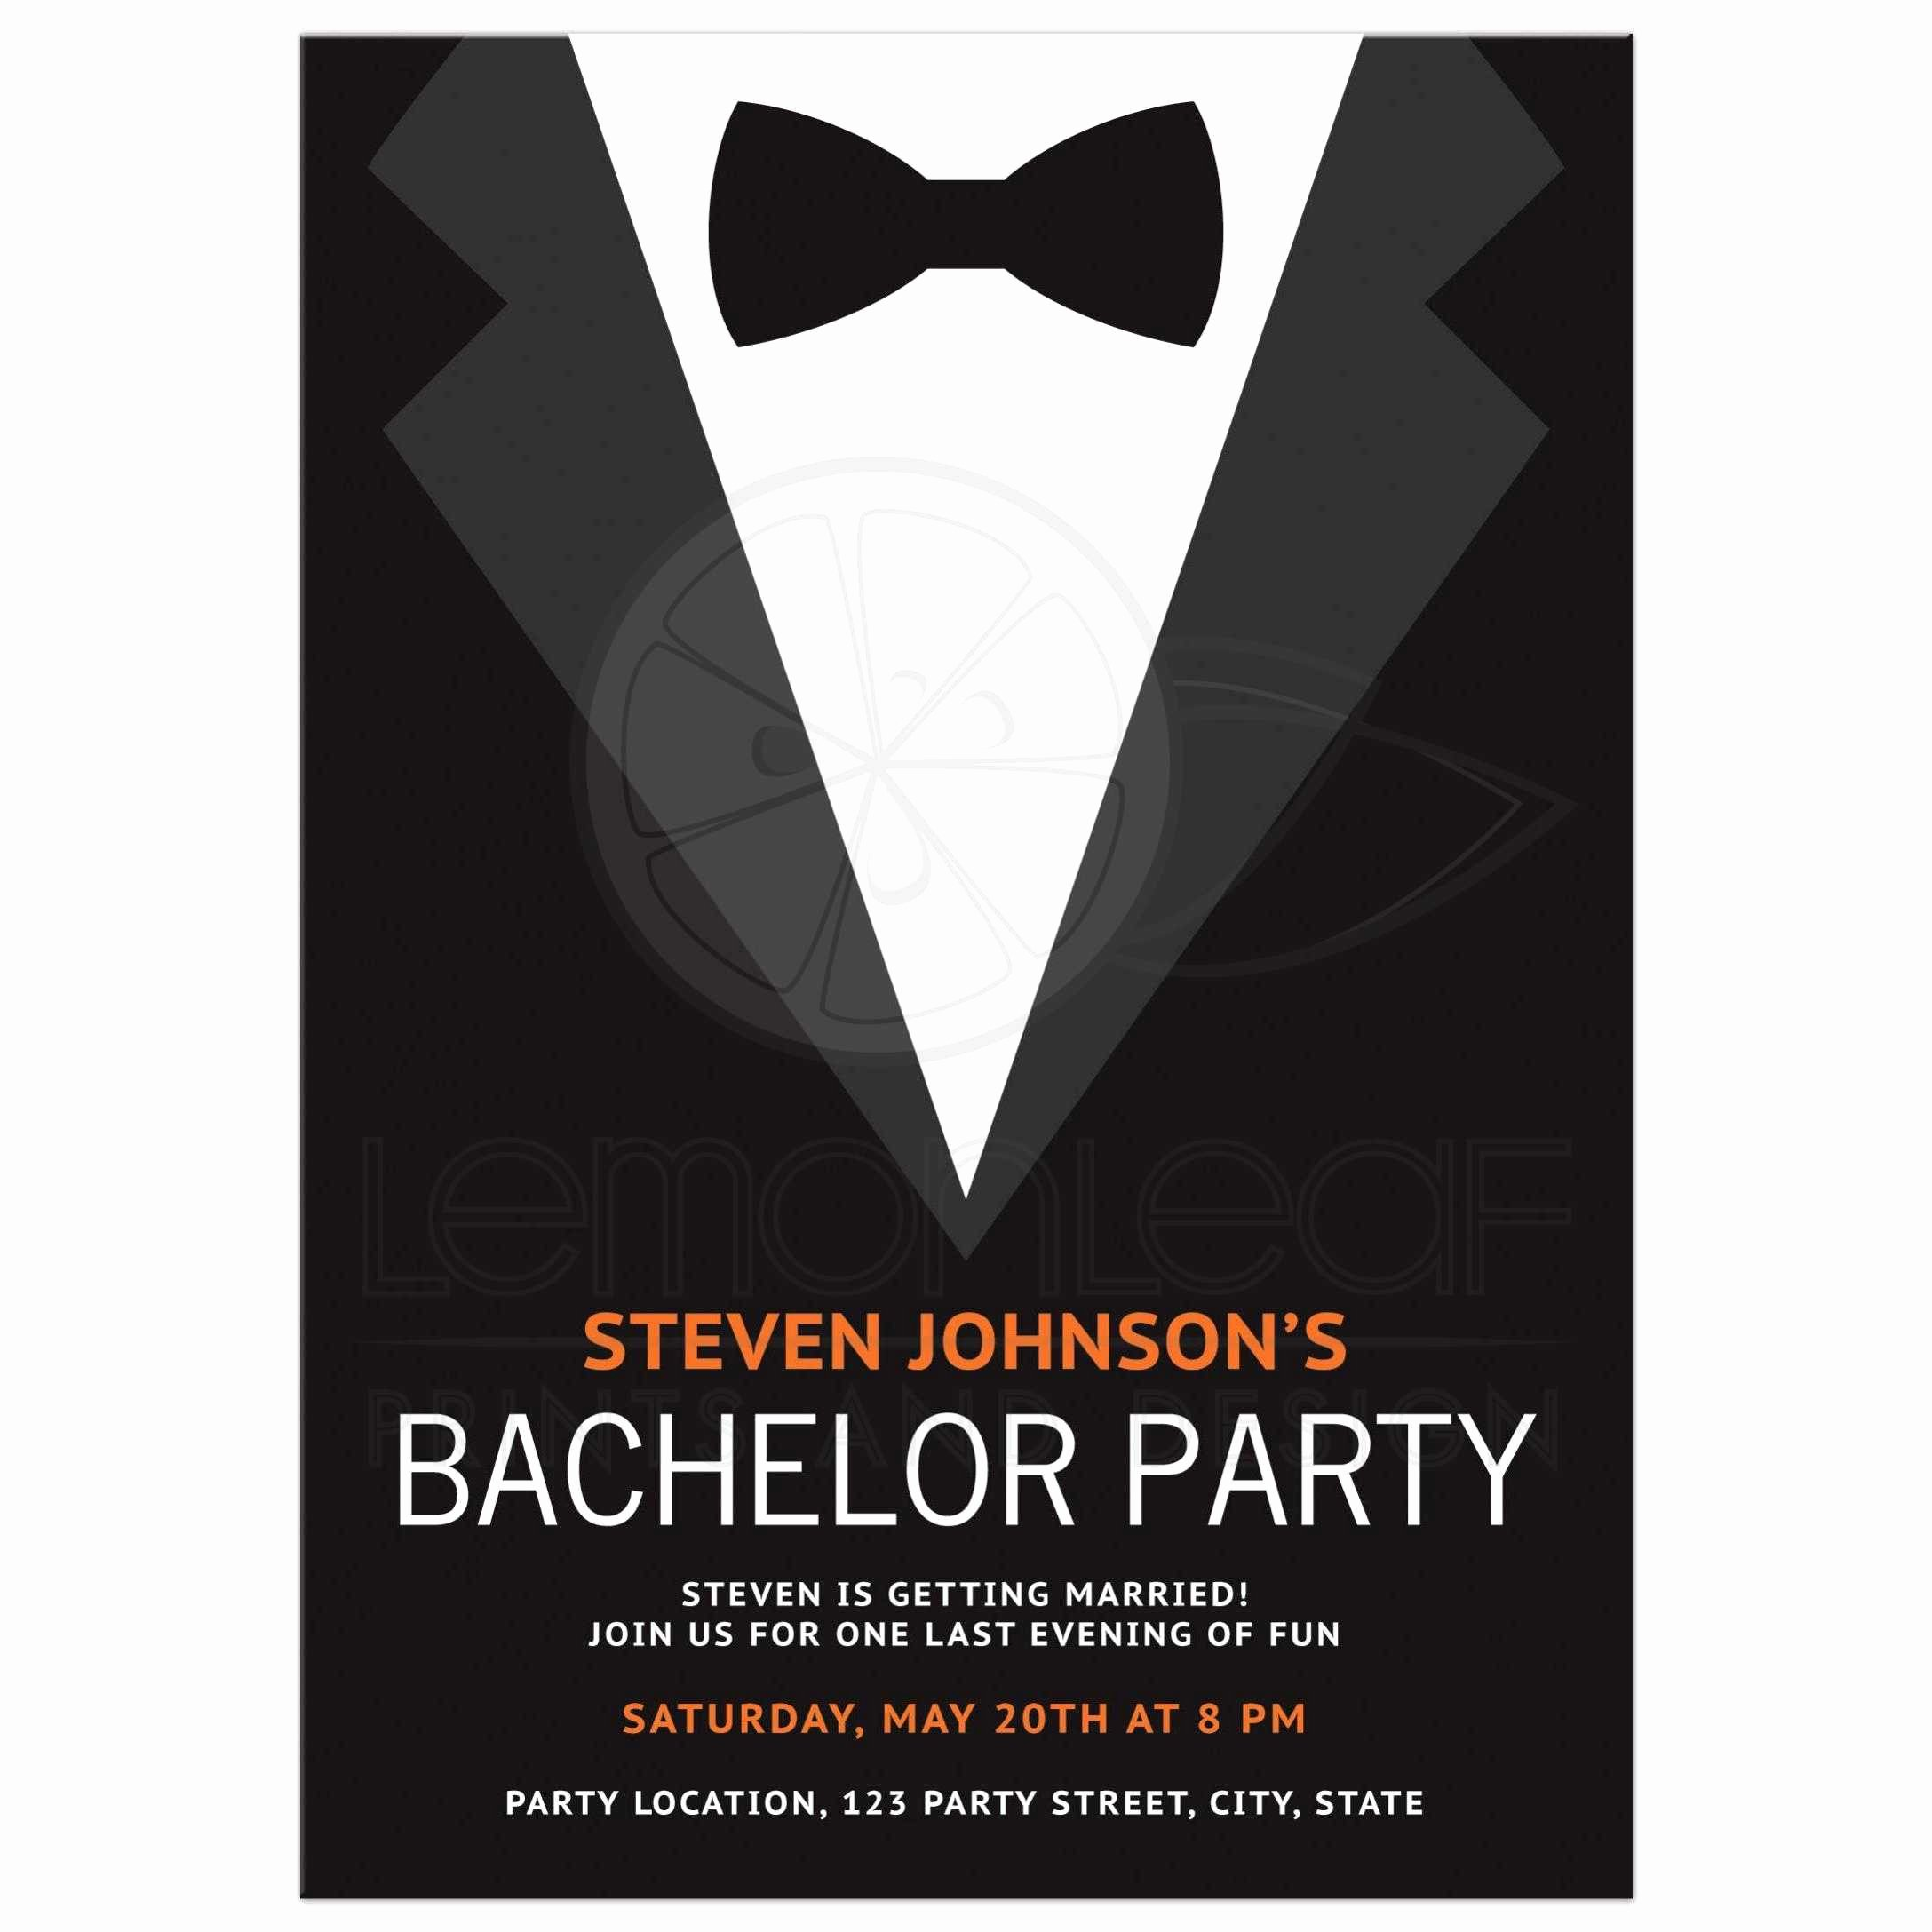 Bachelor Party Invite Template Unique Bachelor Party Invitation with Bow Tie